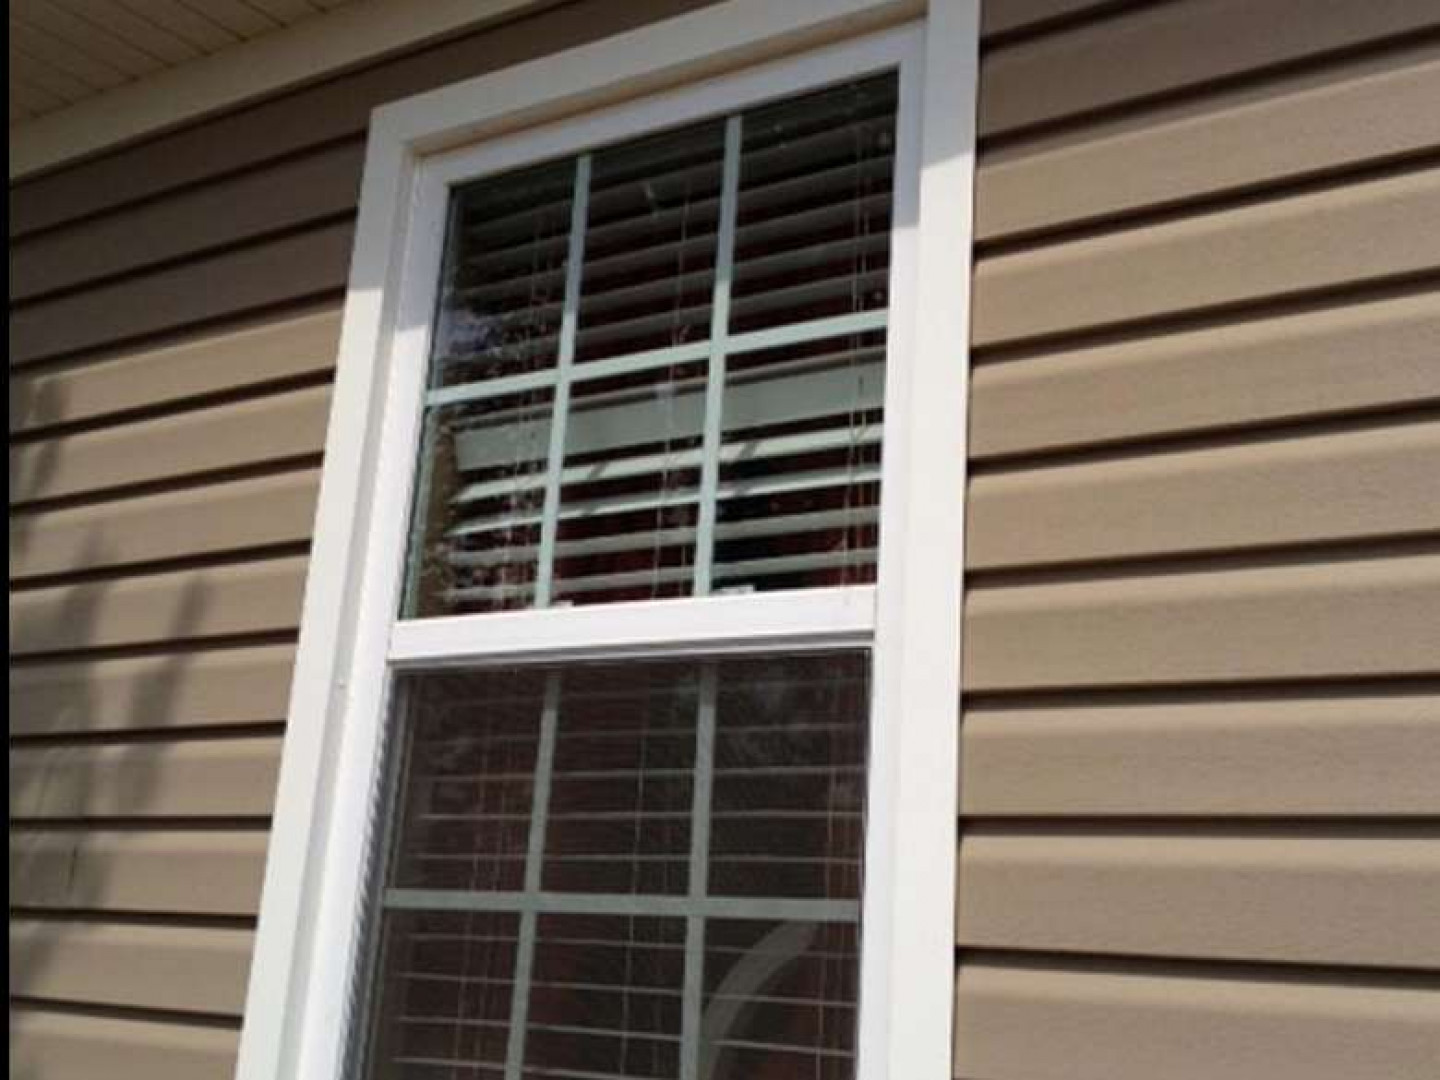 Drafty Windows? Damaged Window Frames? Time for an Update.